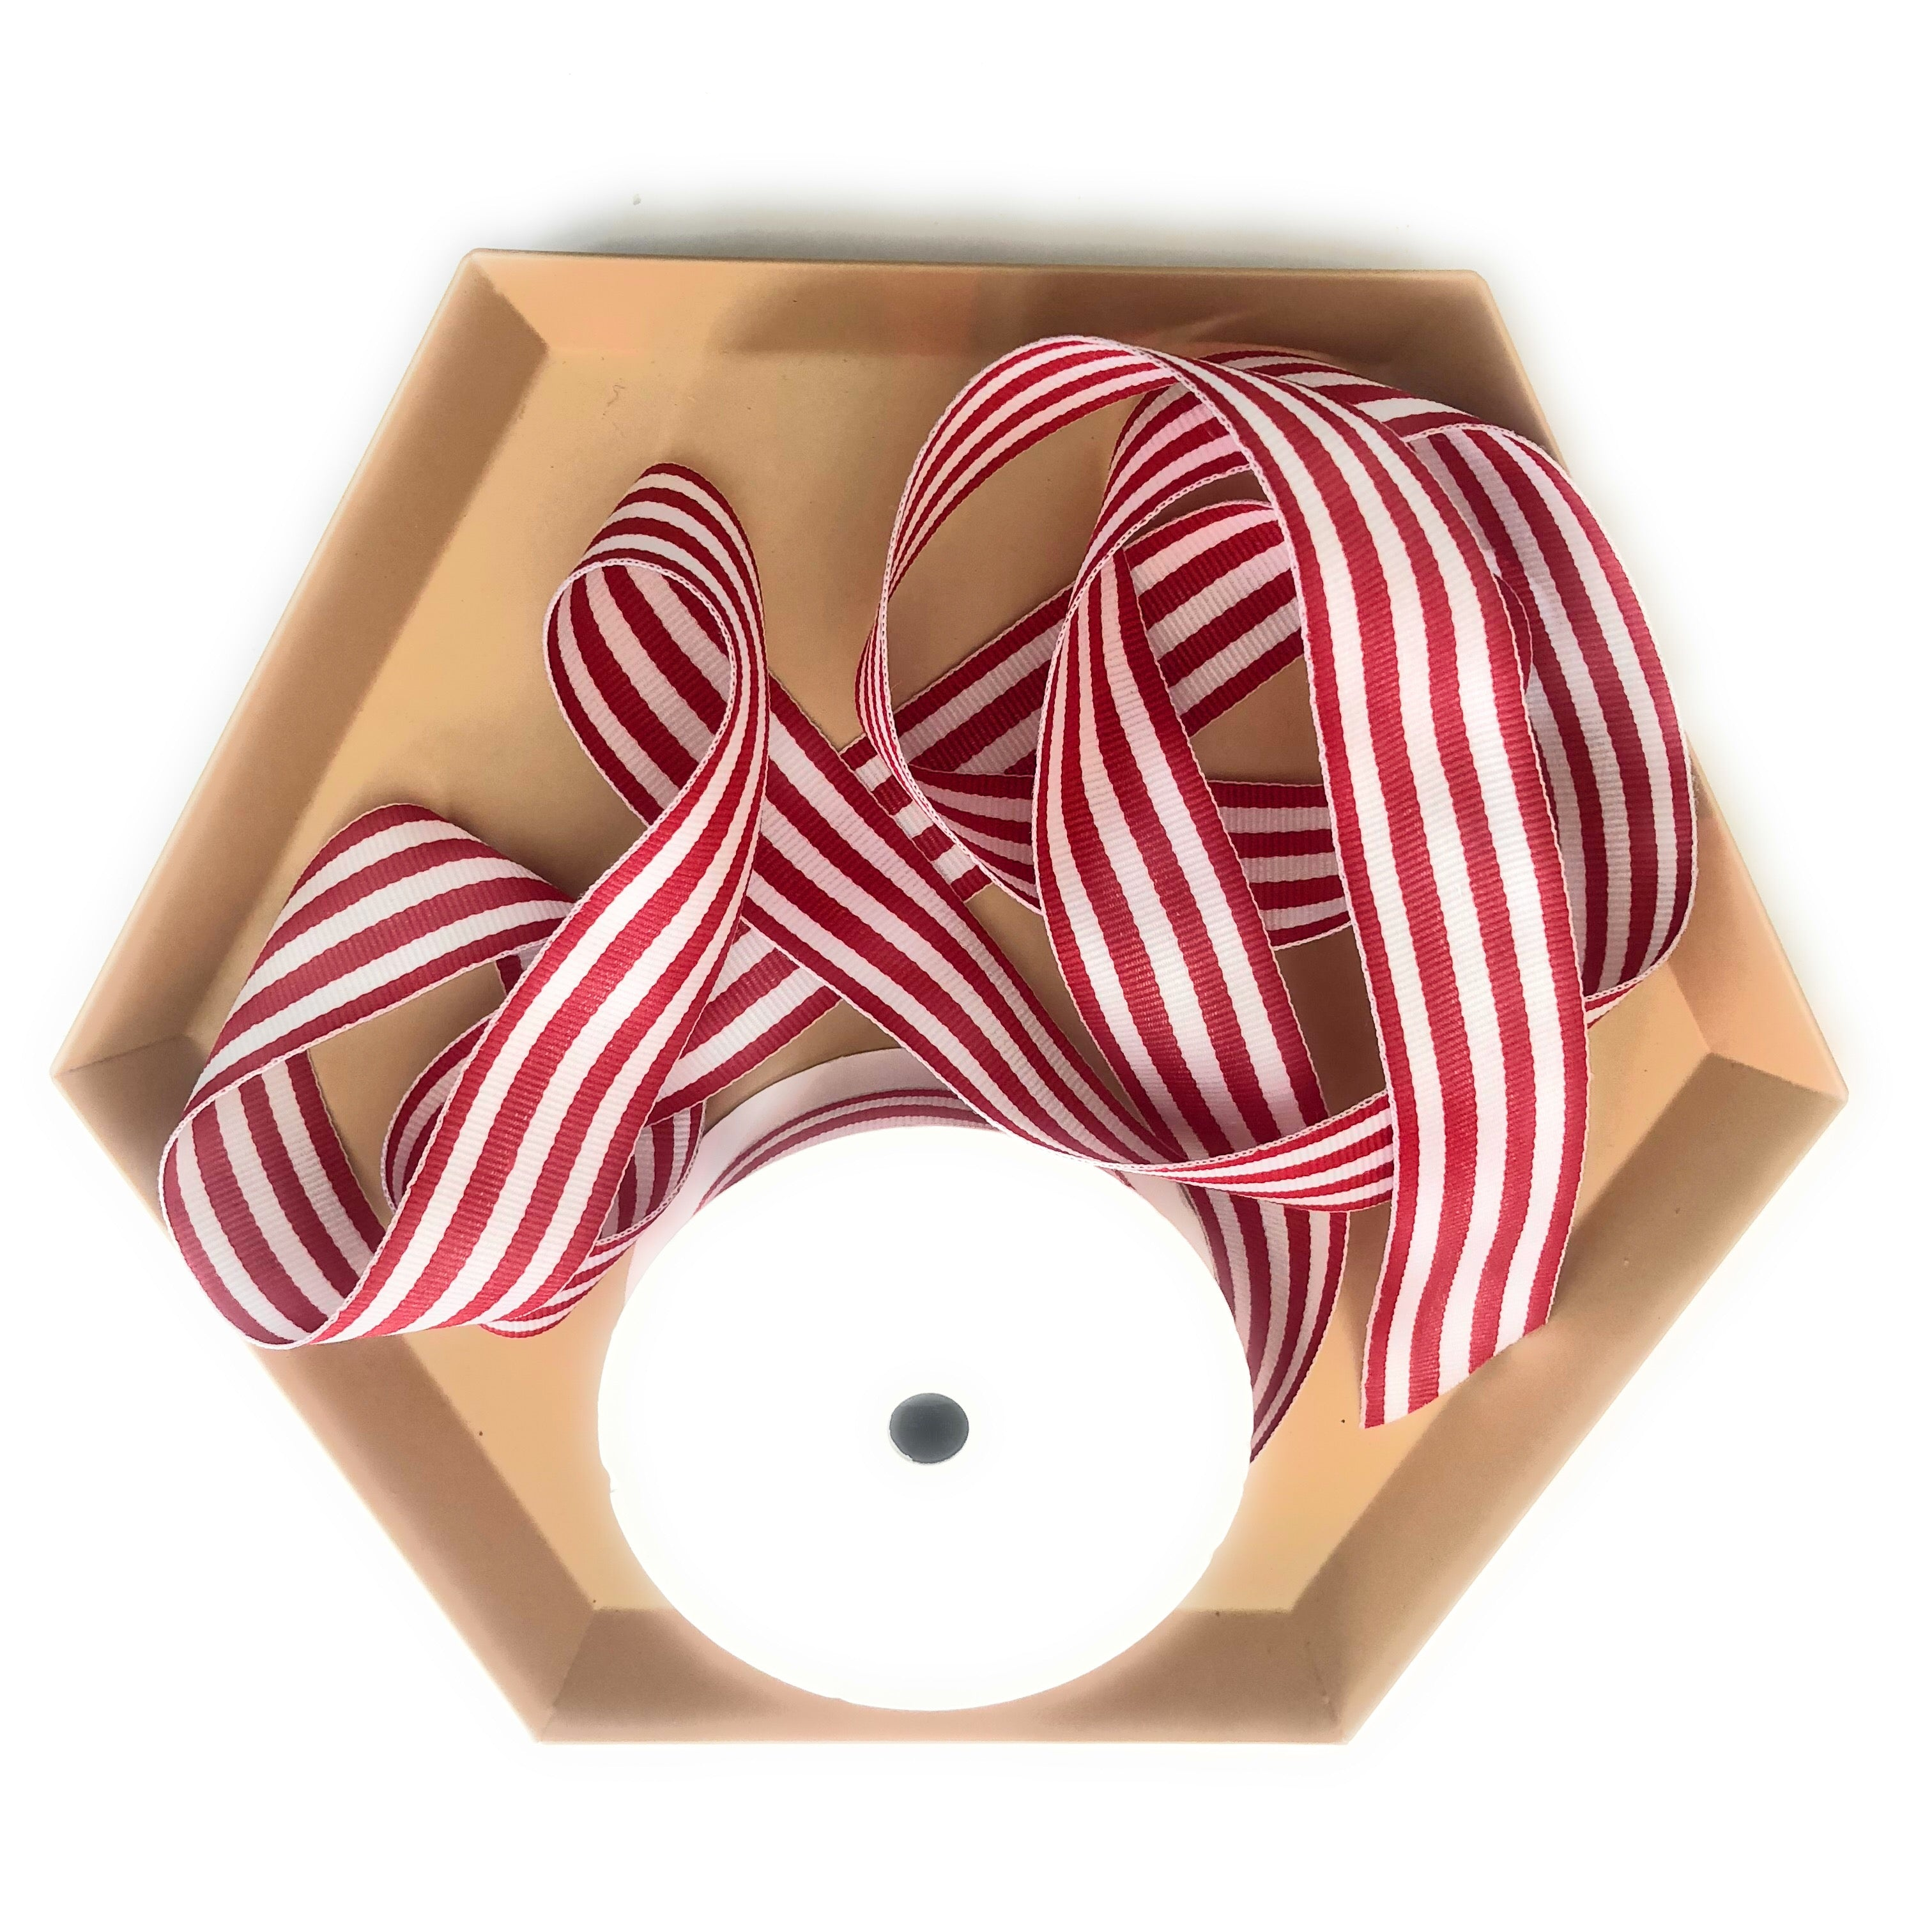 Red and White Striped Grosgrain Ribbon | Double Face Candy Striped Ribbon for Gifts